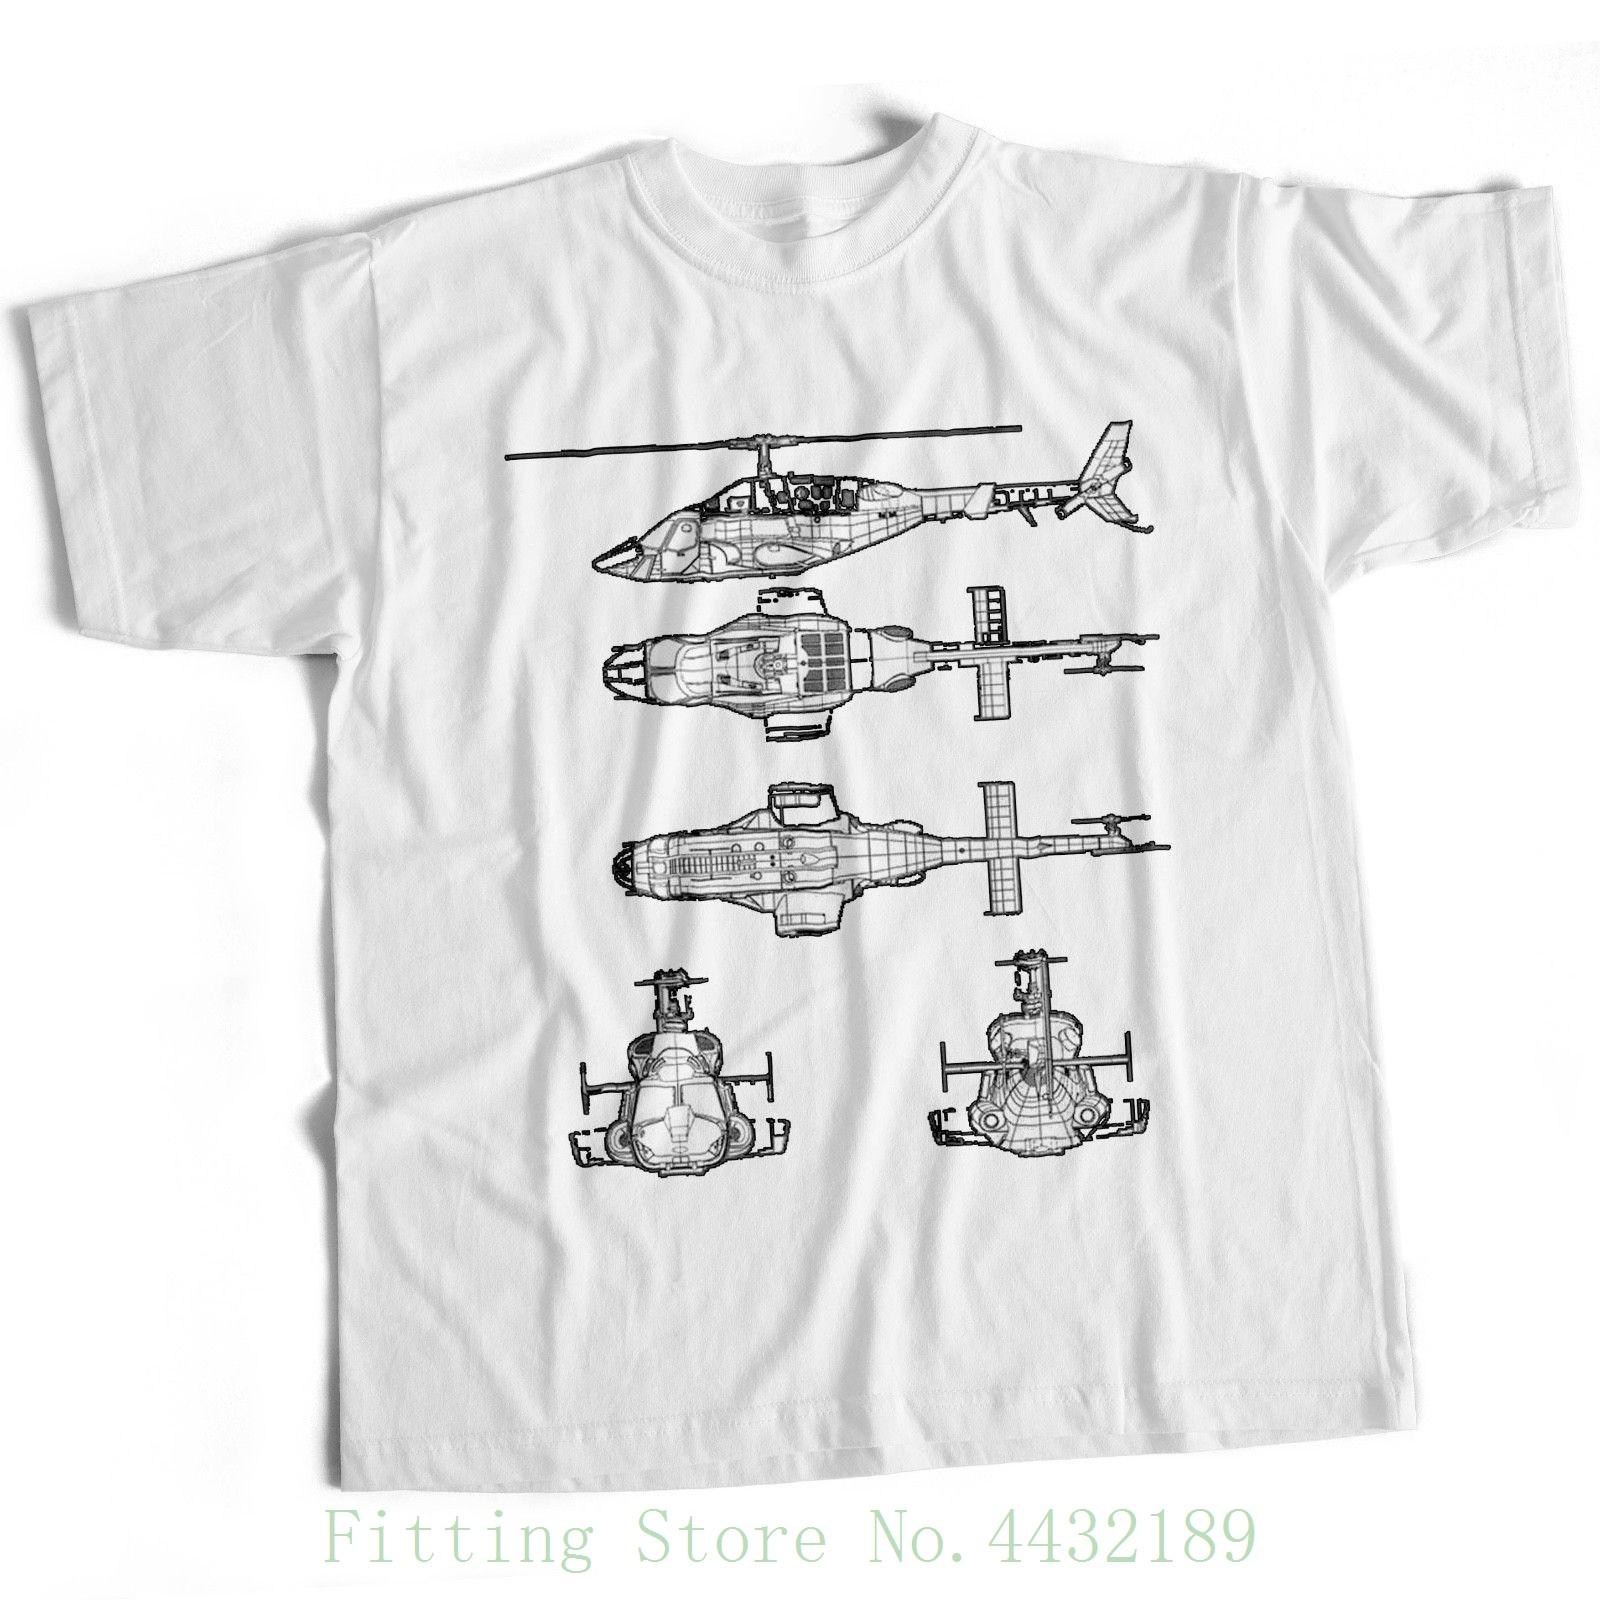 9074b124b Airwolf Helicopter Blueprint Mens T Shirt 80s Tv Series American Military  Film Pre Cotton Tee Shirt For Men Latest T Shirt Designs Coolest Shirts  From ...